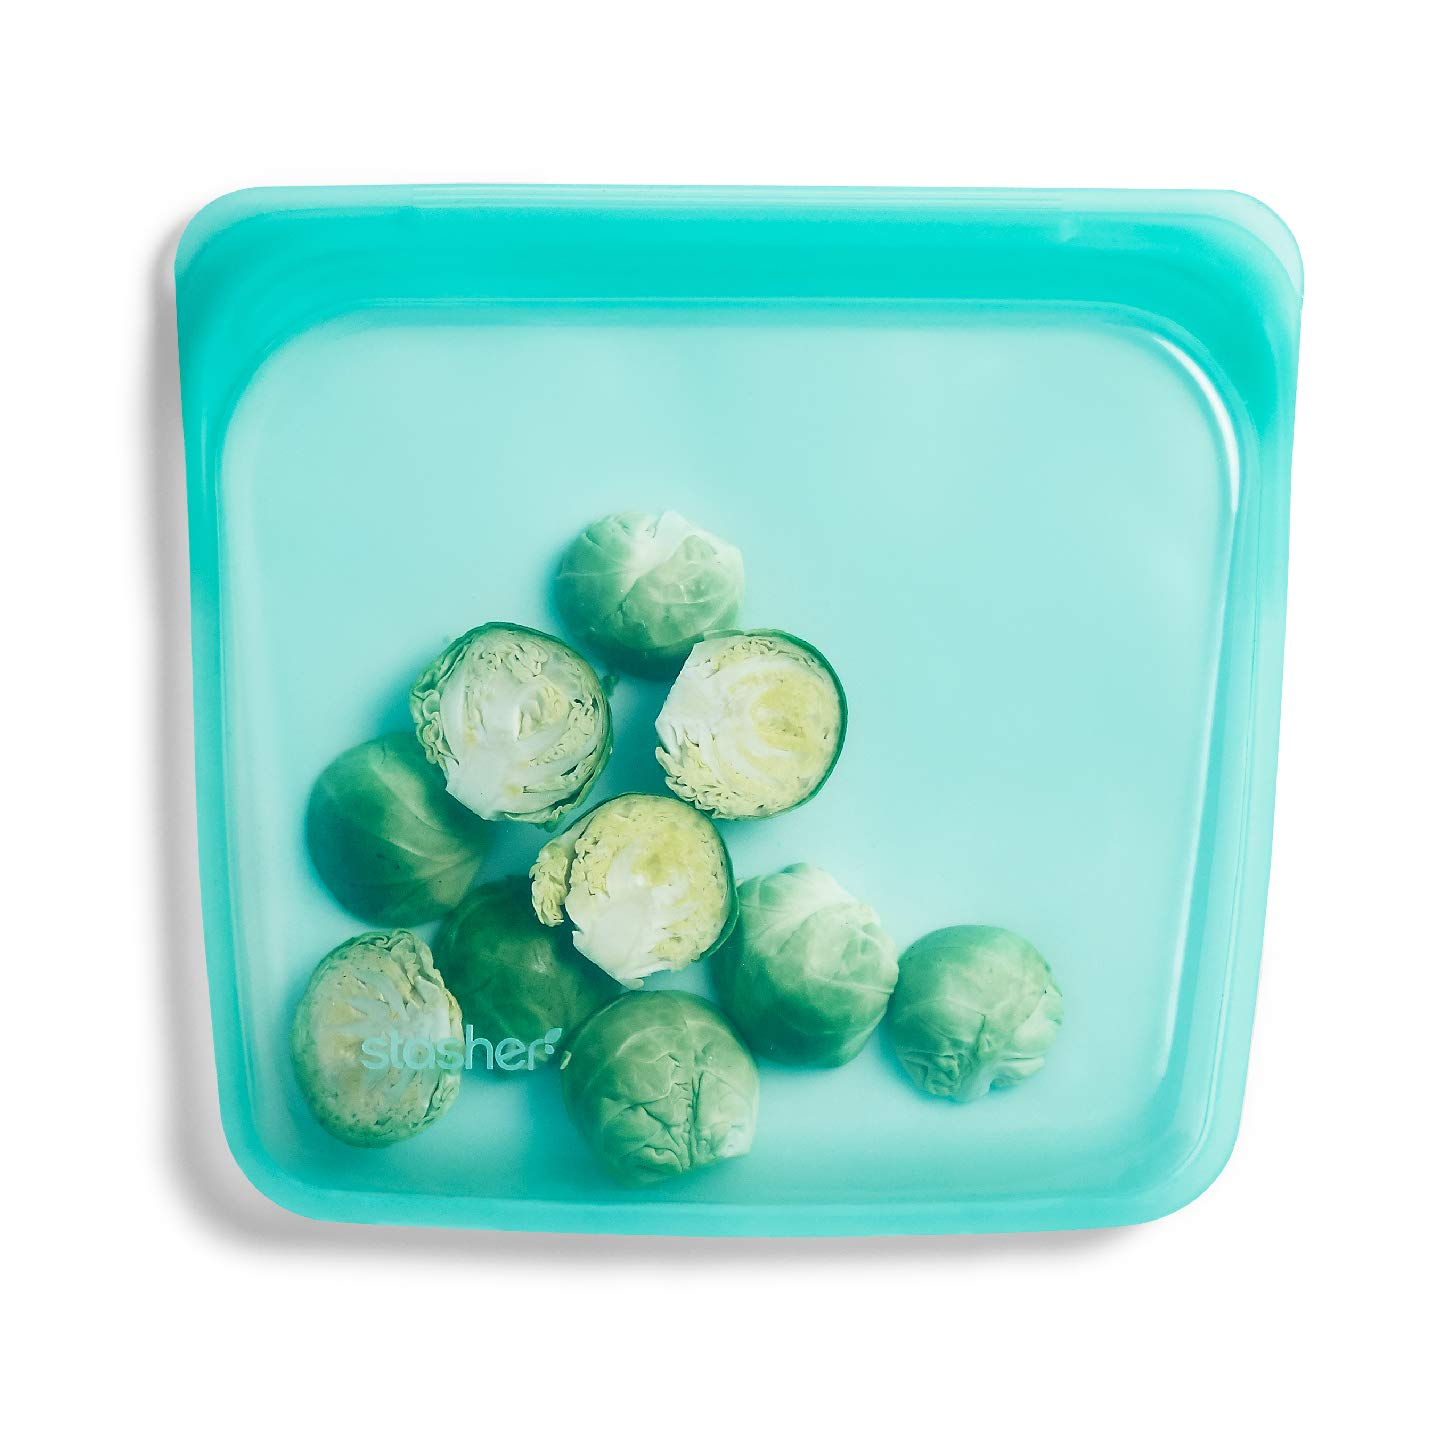 Stasher Reusable Silicone Food Bag  ($12) — Ziploc bags are hard to quit, but Stasher bags are an incredible way to wean yourself off of plastic use. These dishwasher-safe sealable bags are perfect for sandwiches, snacks, and even salads.